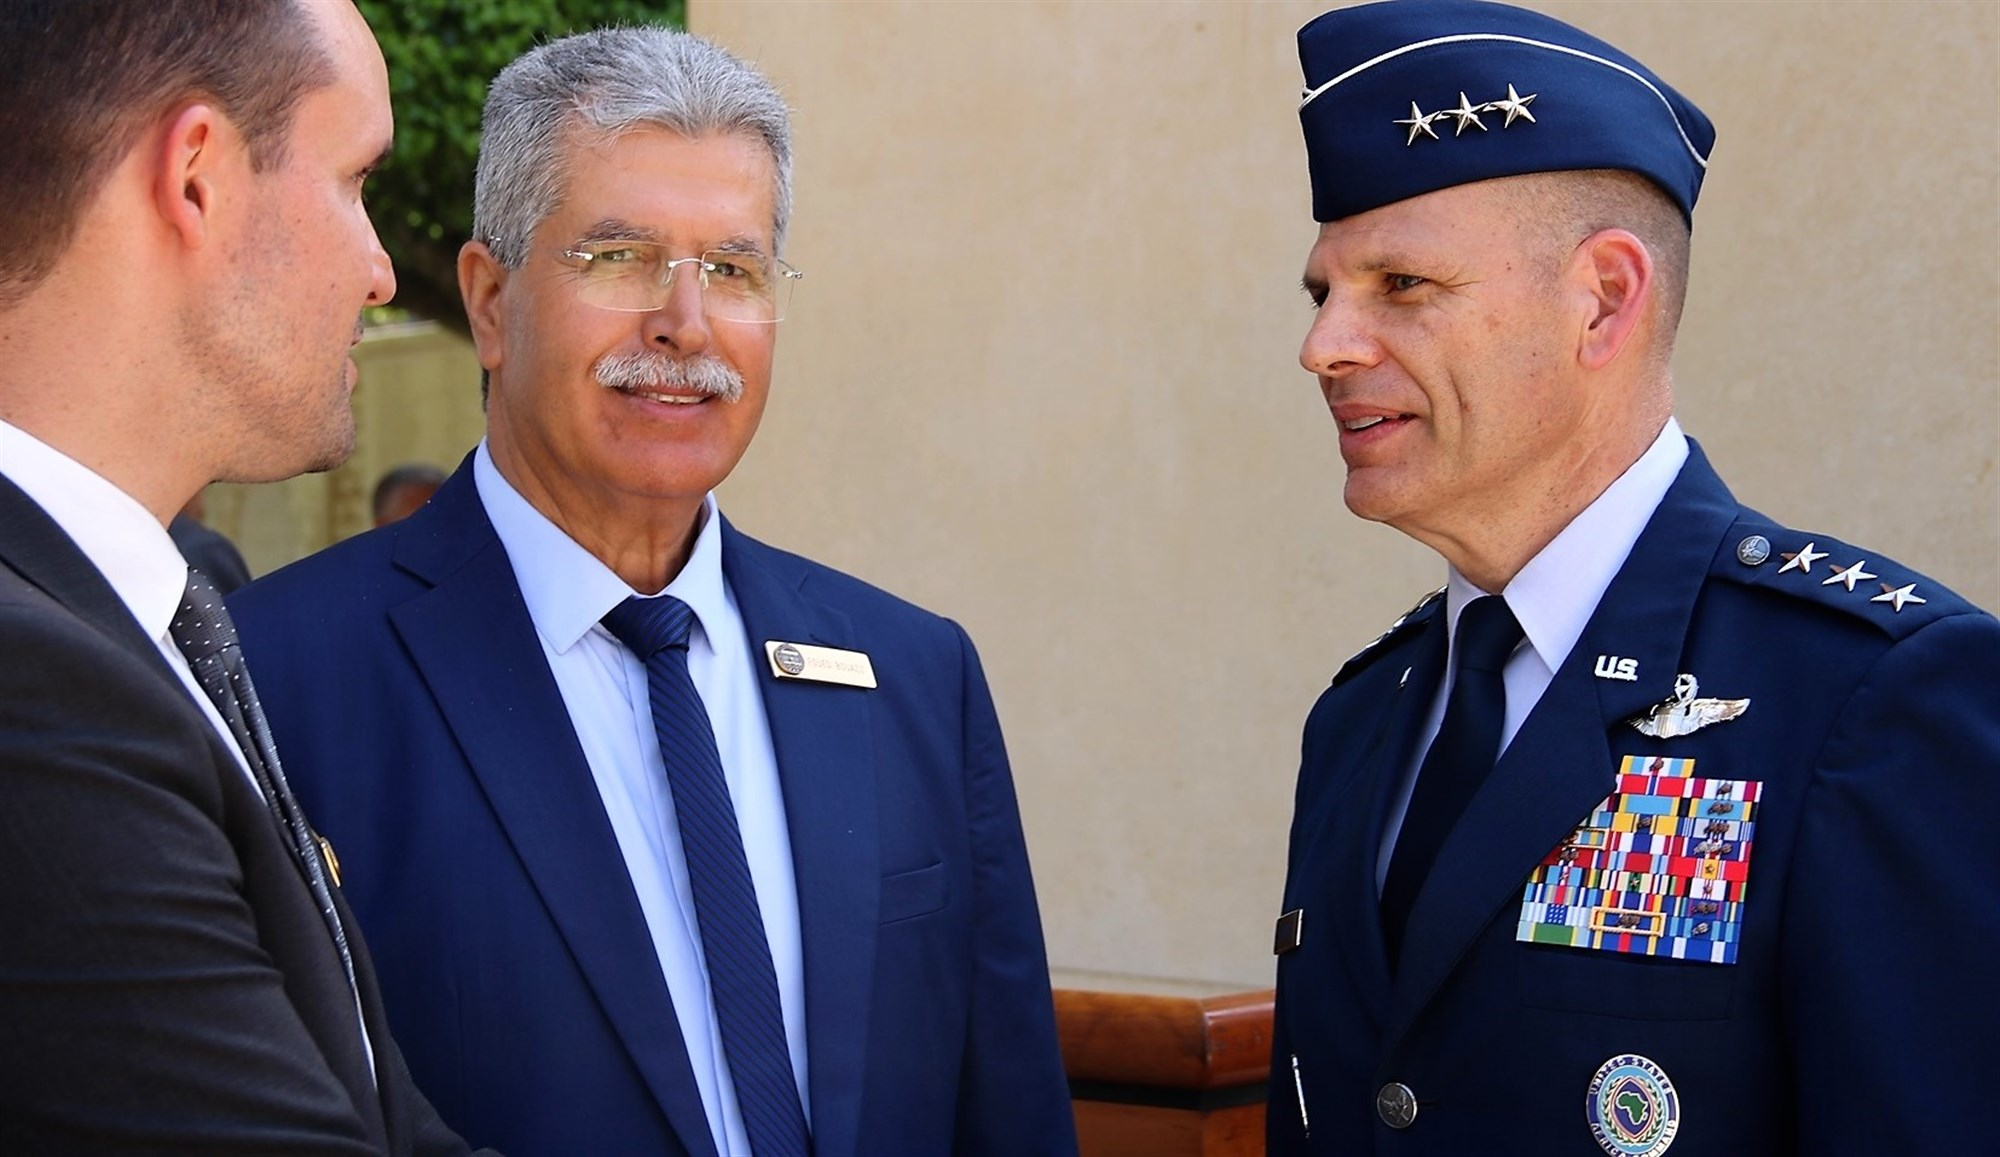 U.S. Air Force Lt. Gen. James C. Vechery, Deputy to the Commander for Military Operations, U.S. Africa Command (right), talks with Mr. Foued Bouaziz, Acting Superintendent, and Mr. Ryan Blum, both with the North Africa American Cemetery, after the Memorial Day ceremony in Carthage, Tunisia, May 28, 2018. (Photo by Zouhaier SFAXI, U.S. Embassy Tunis)